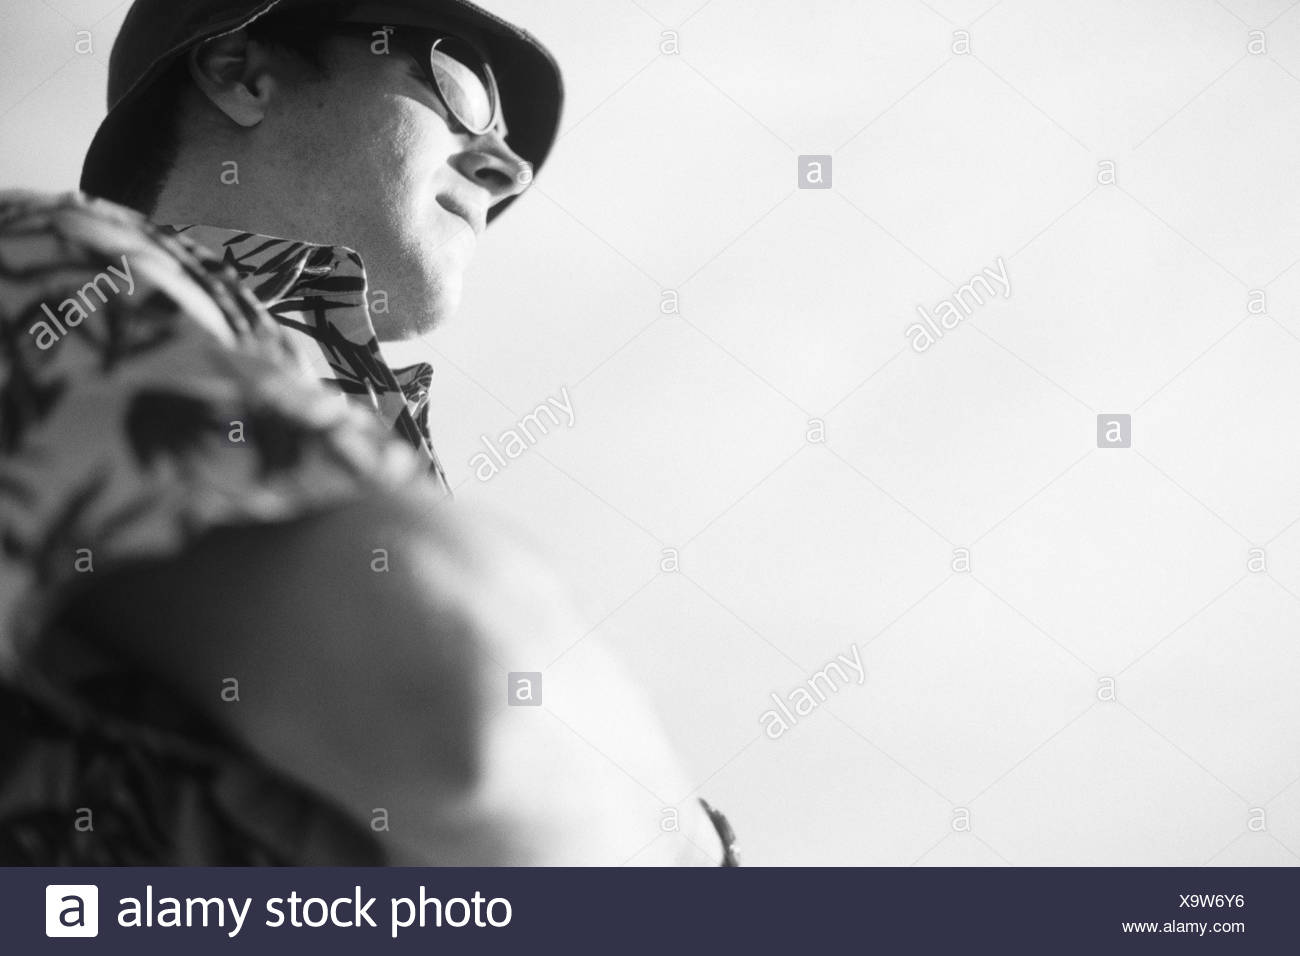 Man, sunglasses, Hawaii shirt, care, arms cross, from below, b/w, vacationers, tourist, think, consider, seriously, thoughts, determination, wait, patience, Ready for of a holiday, view in the distance, steadfastness, outside, Ti3 - Stock Image